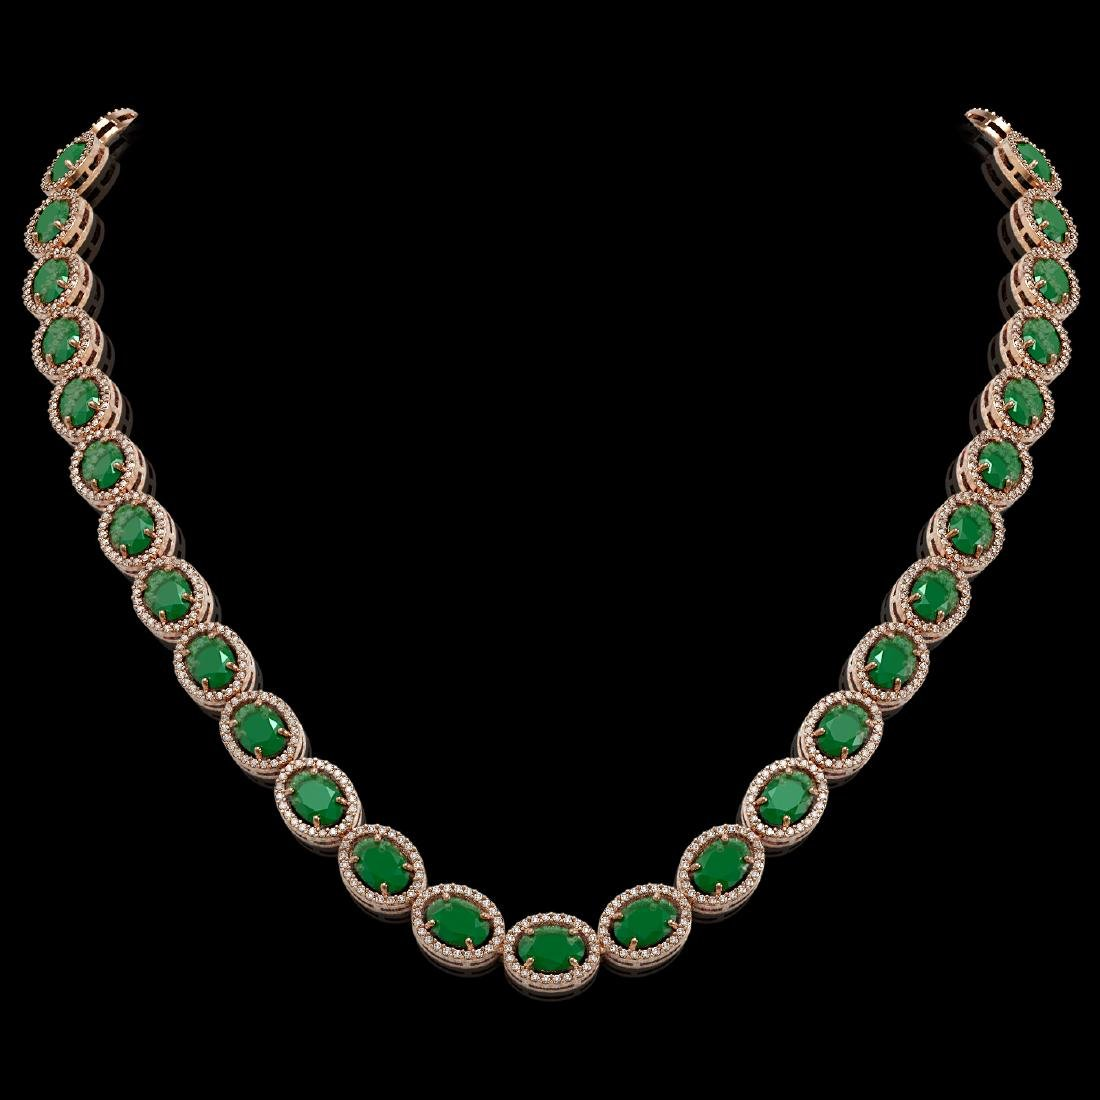 52.15 CTW Emerald & Diamond Halo Necklace 10K Rose Gold